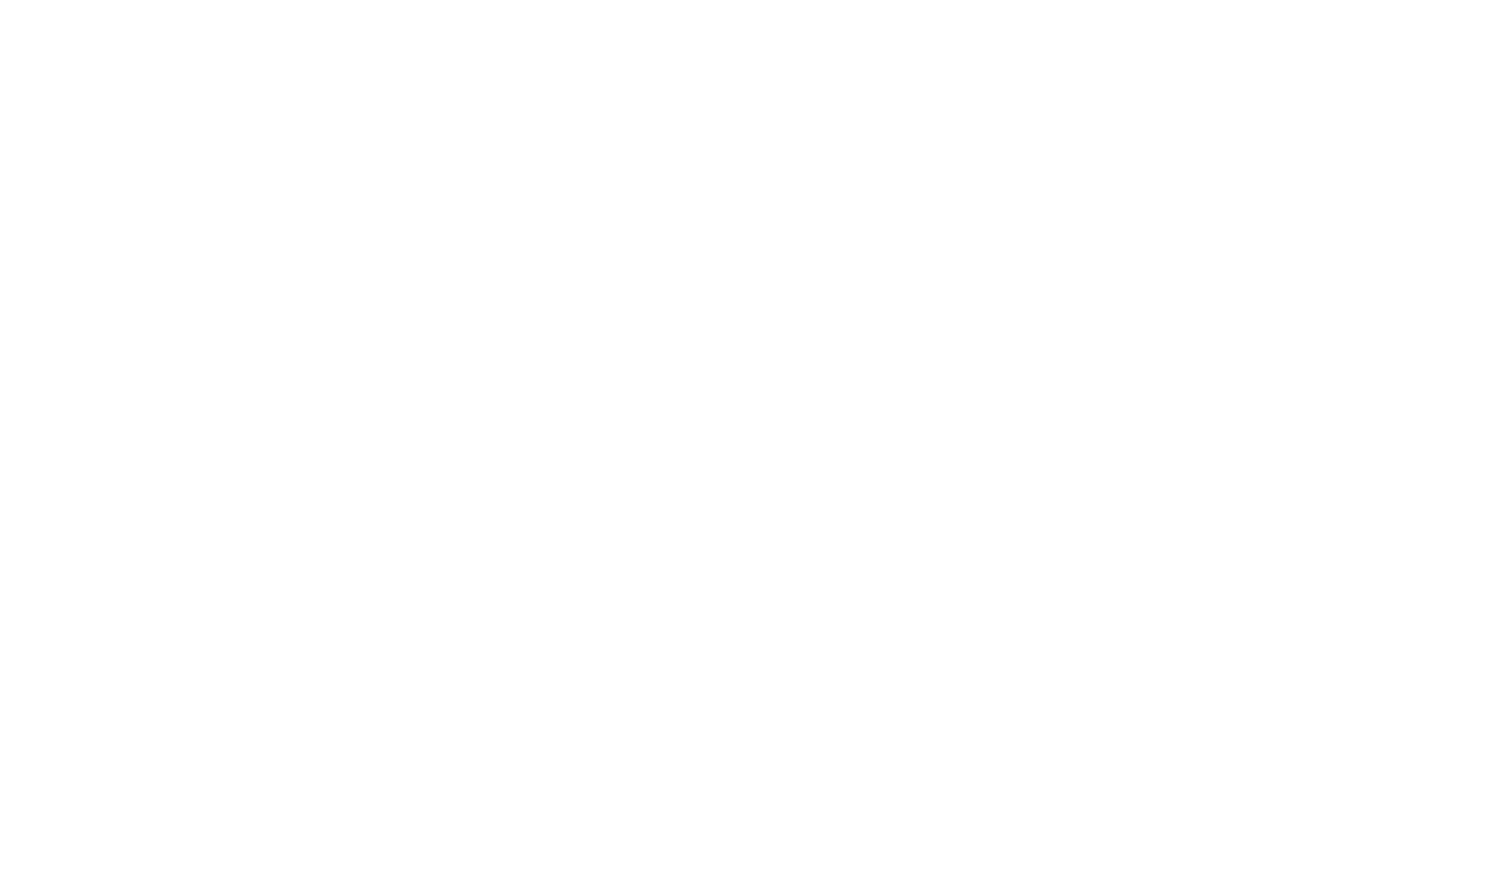 Bell Lake Yurt--Montana Backcountry Ski Guides